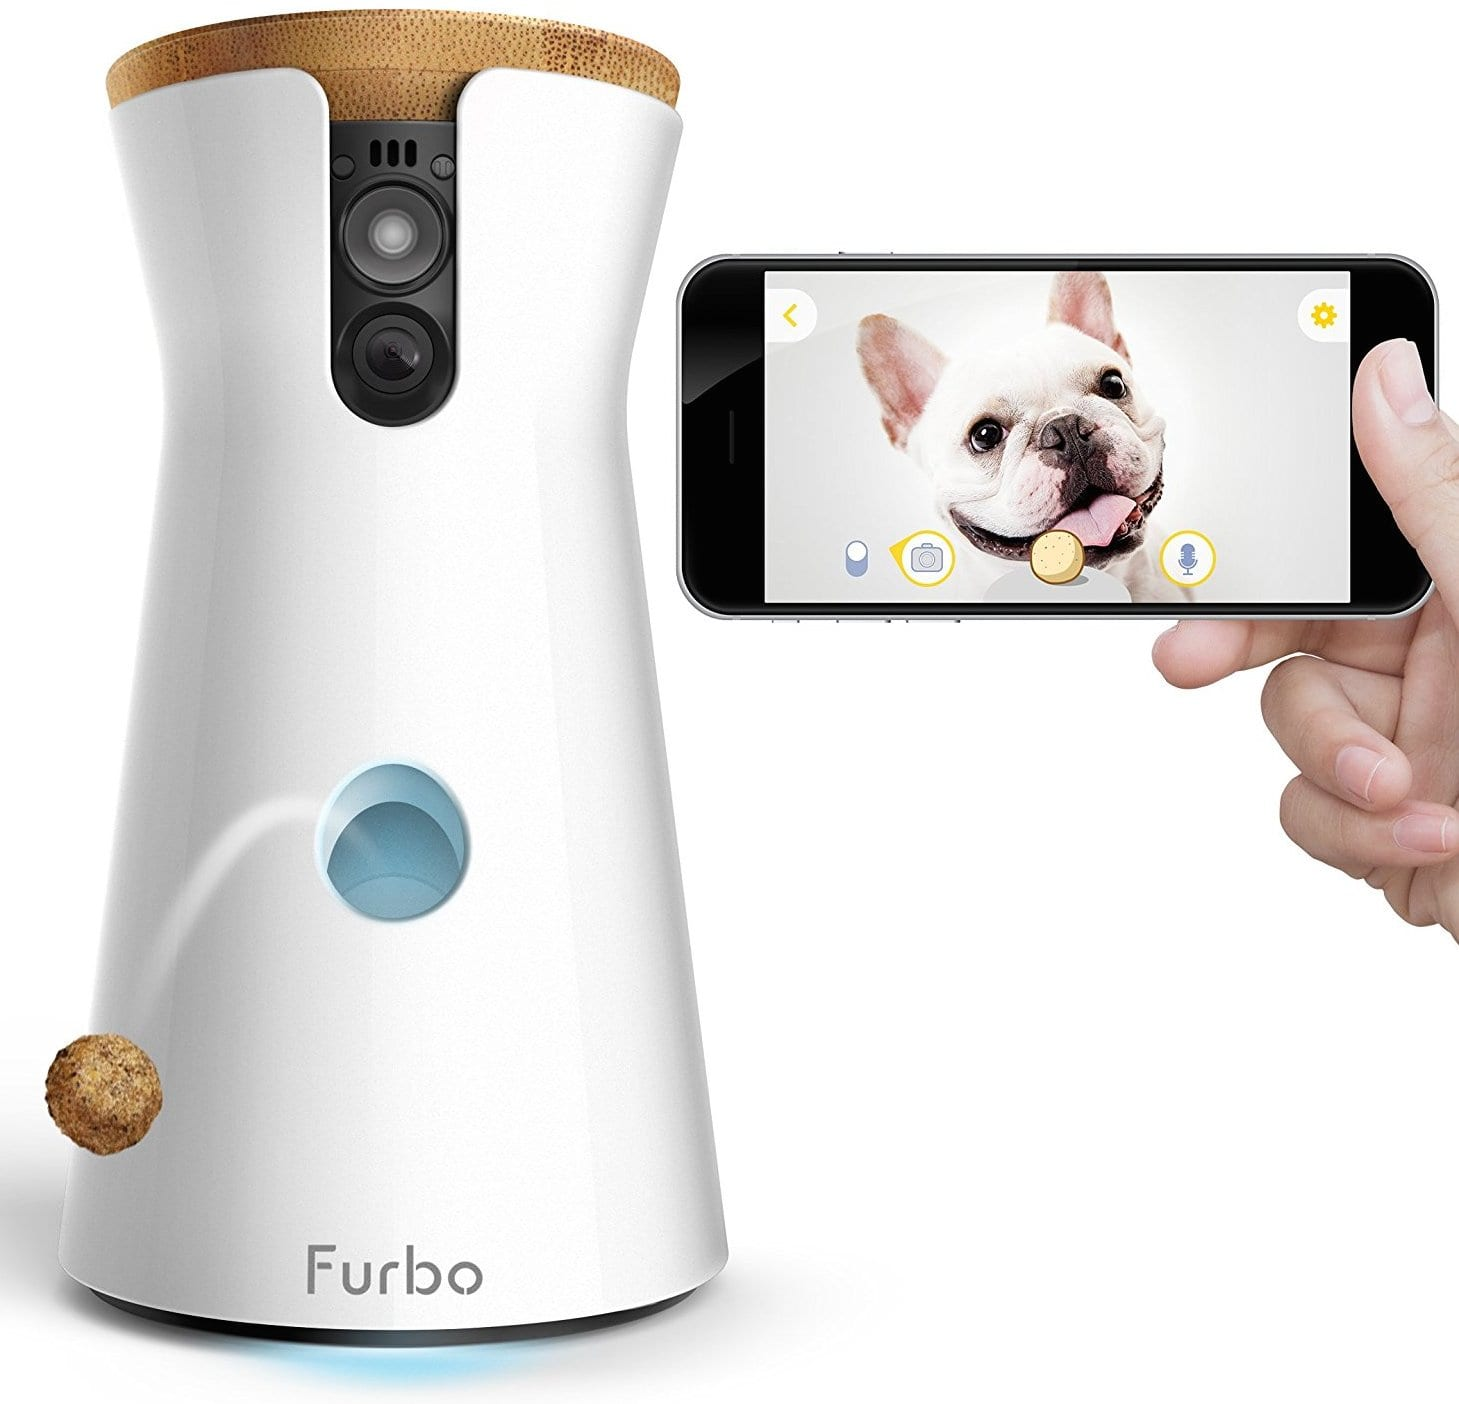 Best Wireless Home Security Cameras 2017: Pet Monitoring Camera by Furbo with Treat Toss